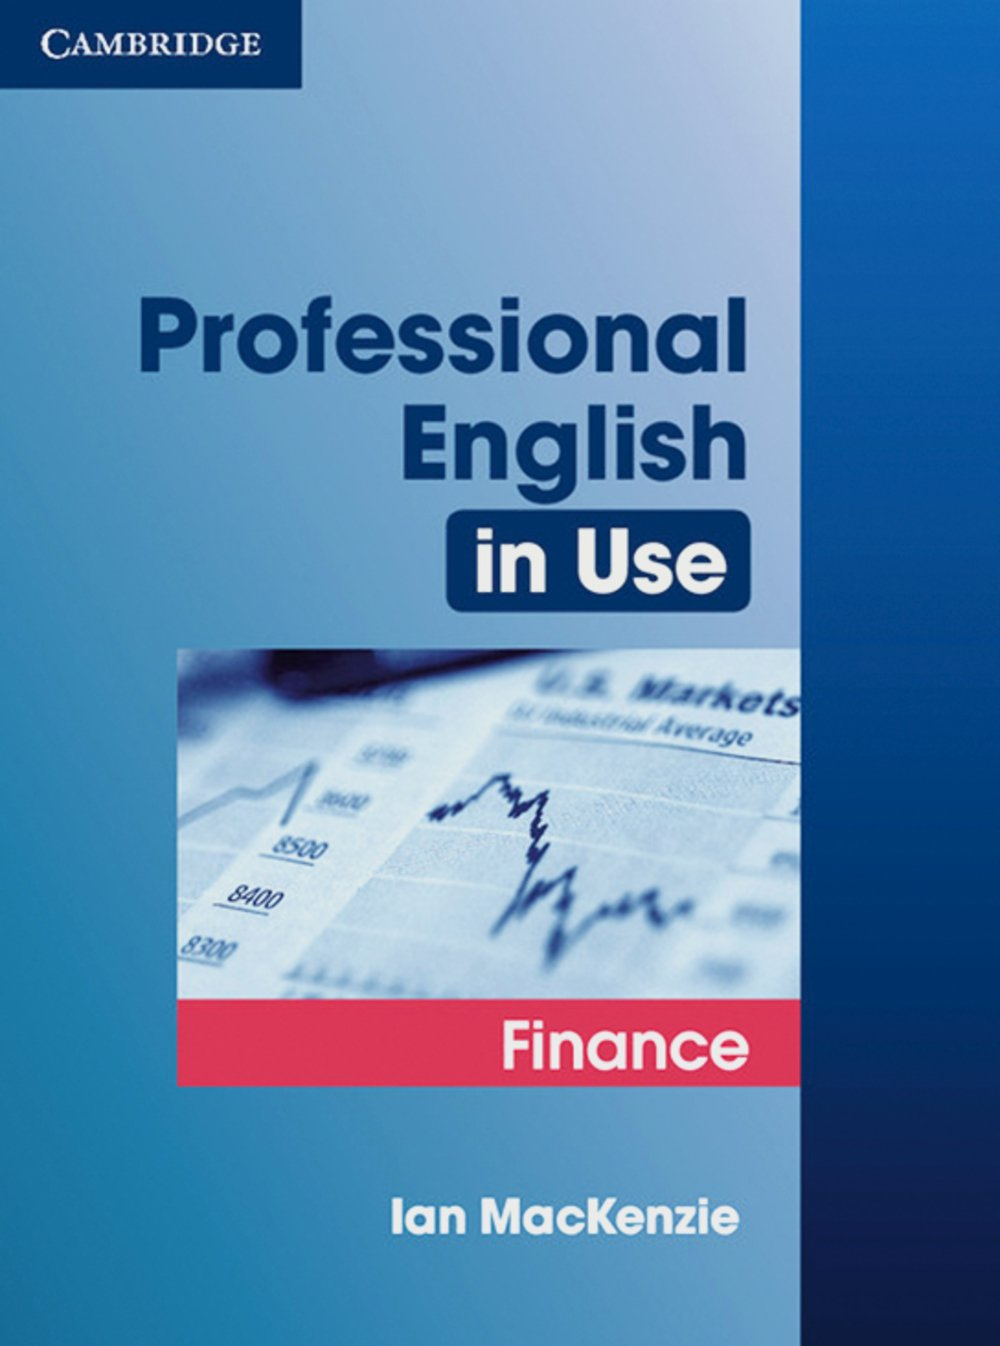 Professional English in Use Finance: Edition with answers